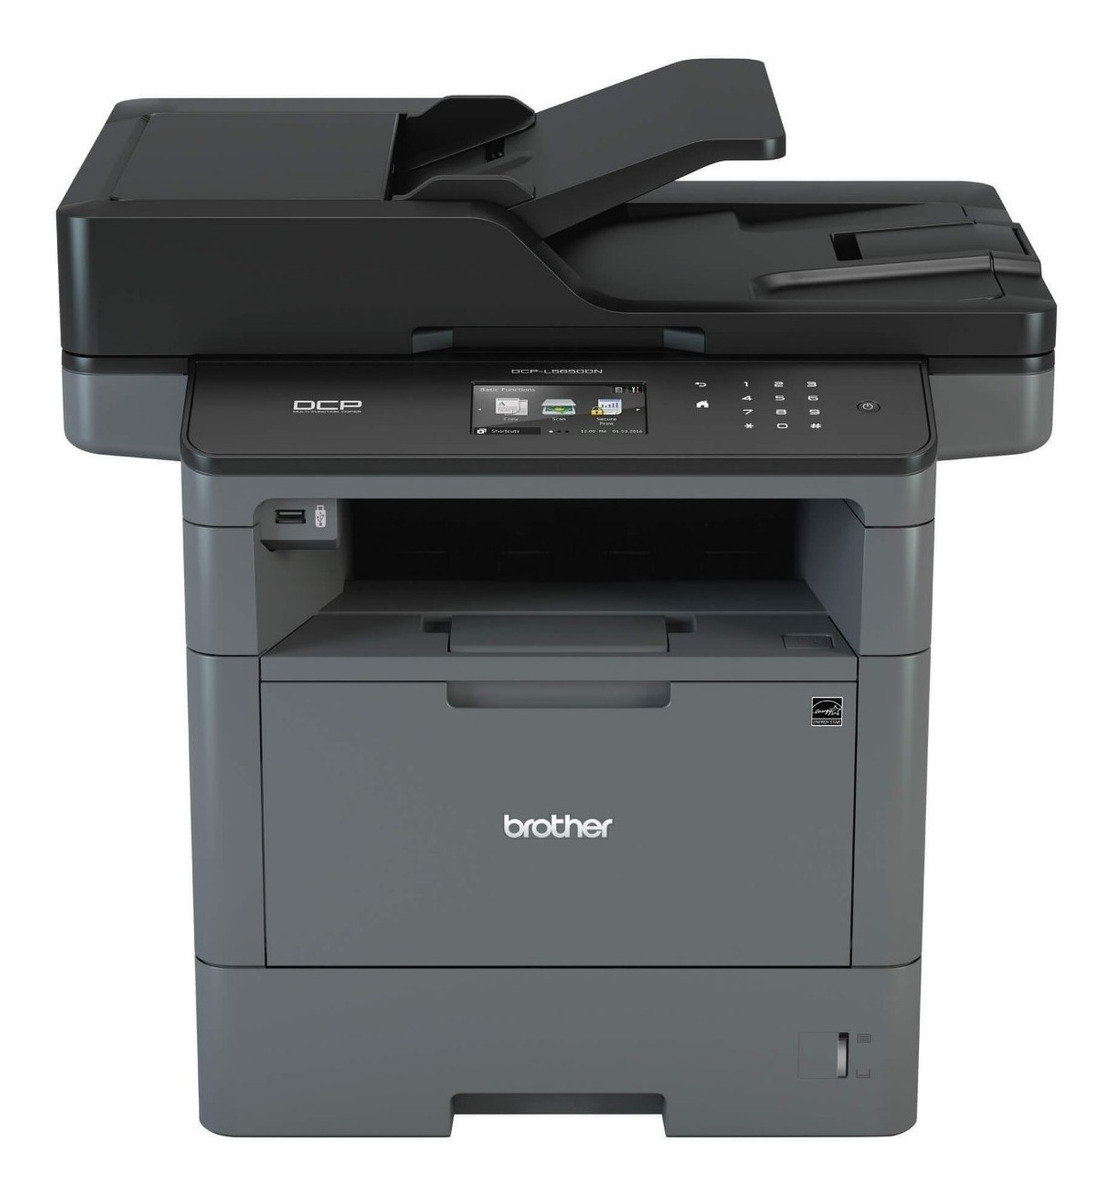 BROTHER DCP-8085DN PRINTER ISIS DRIVERS (2019)